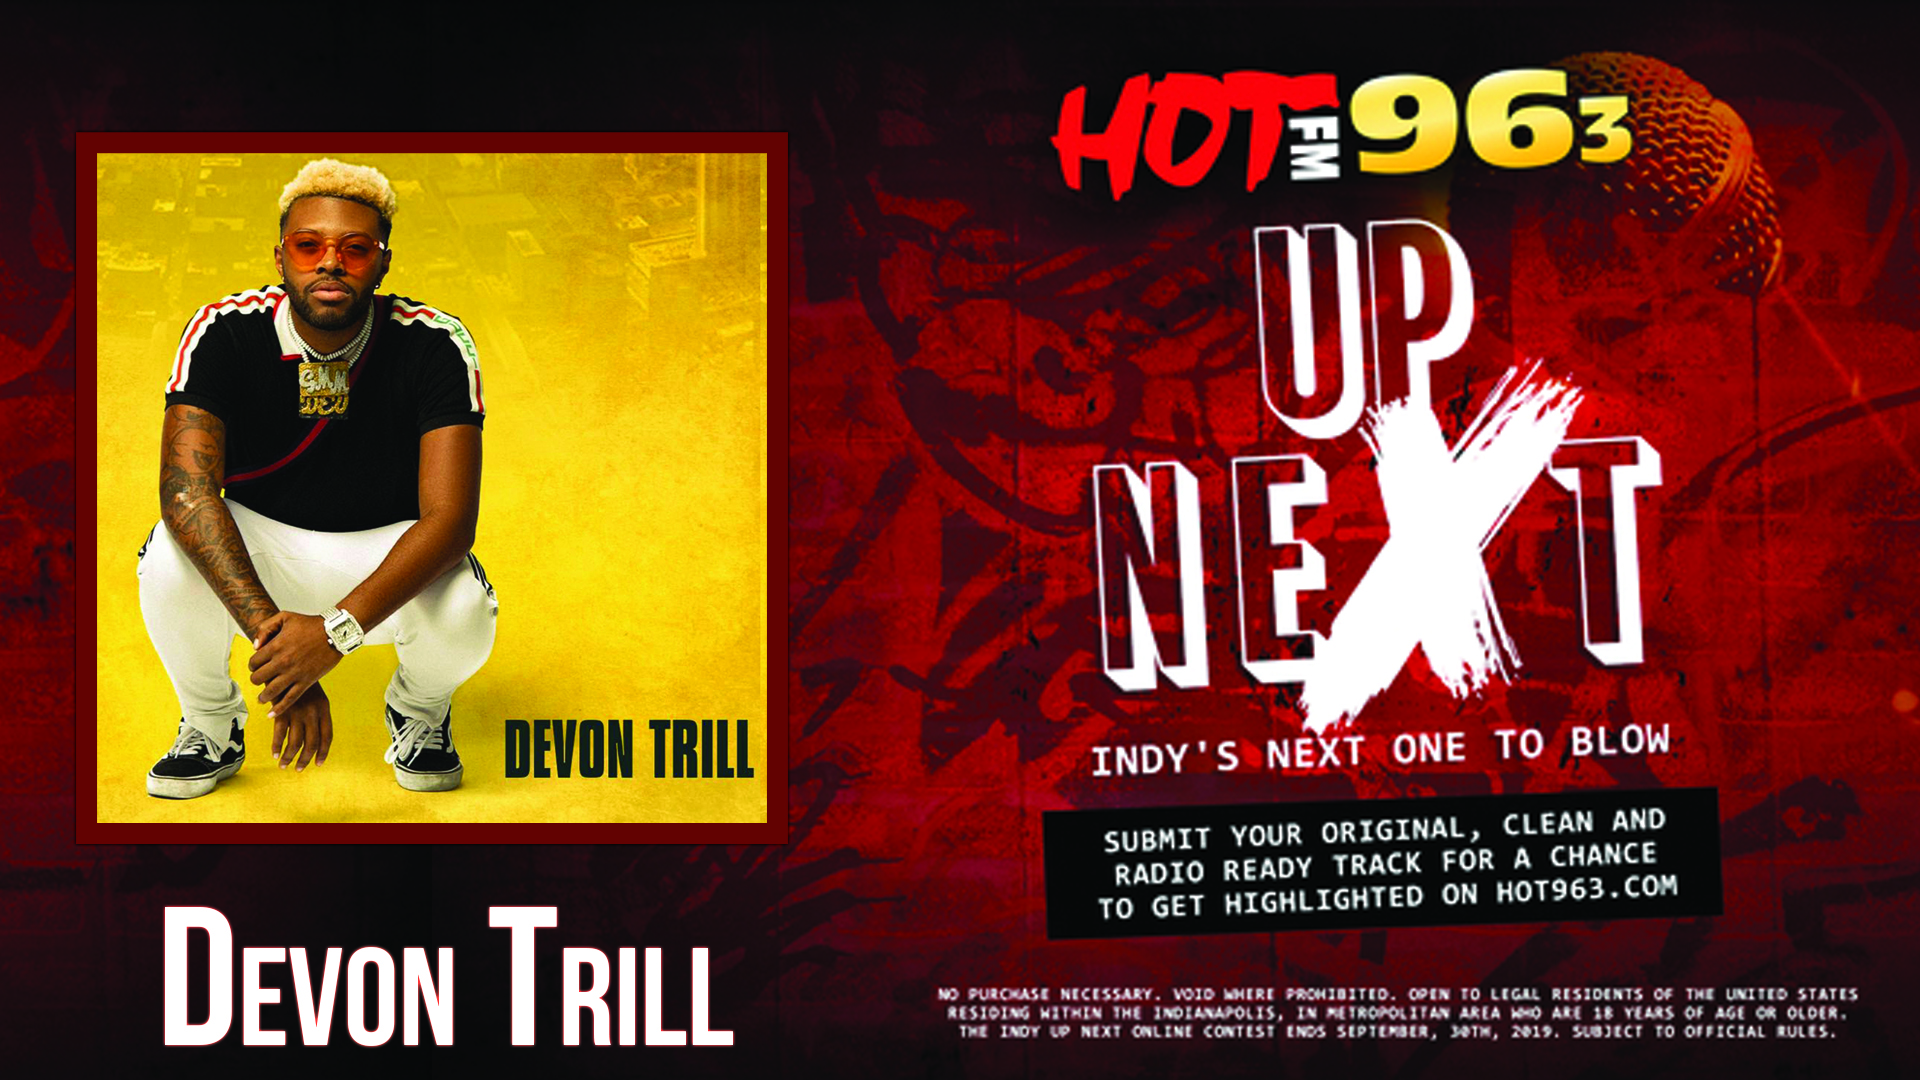 Up Next: Indy's Next One To Blow: Devon Trill